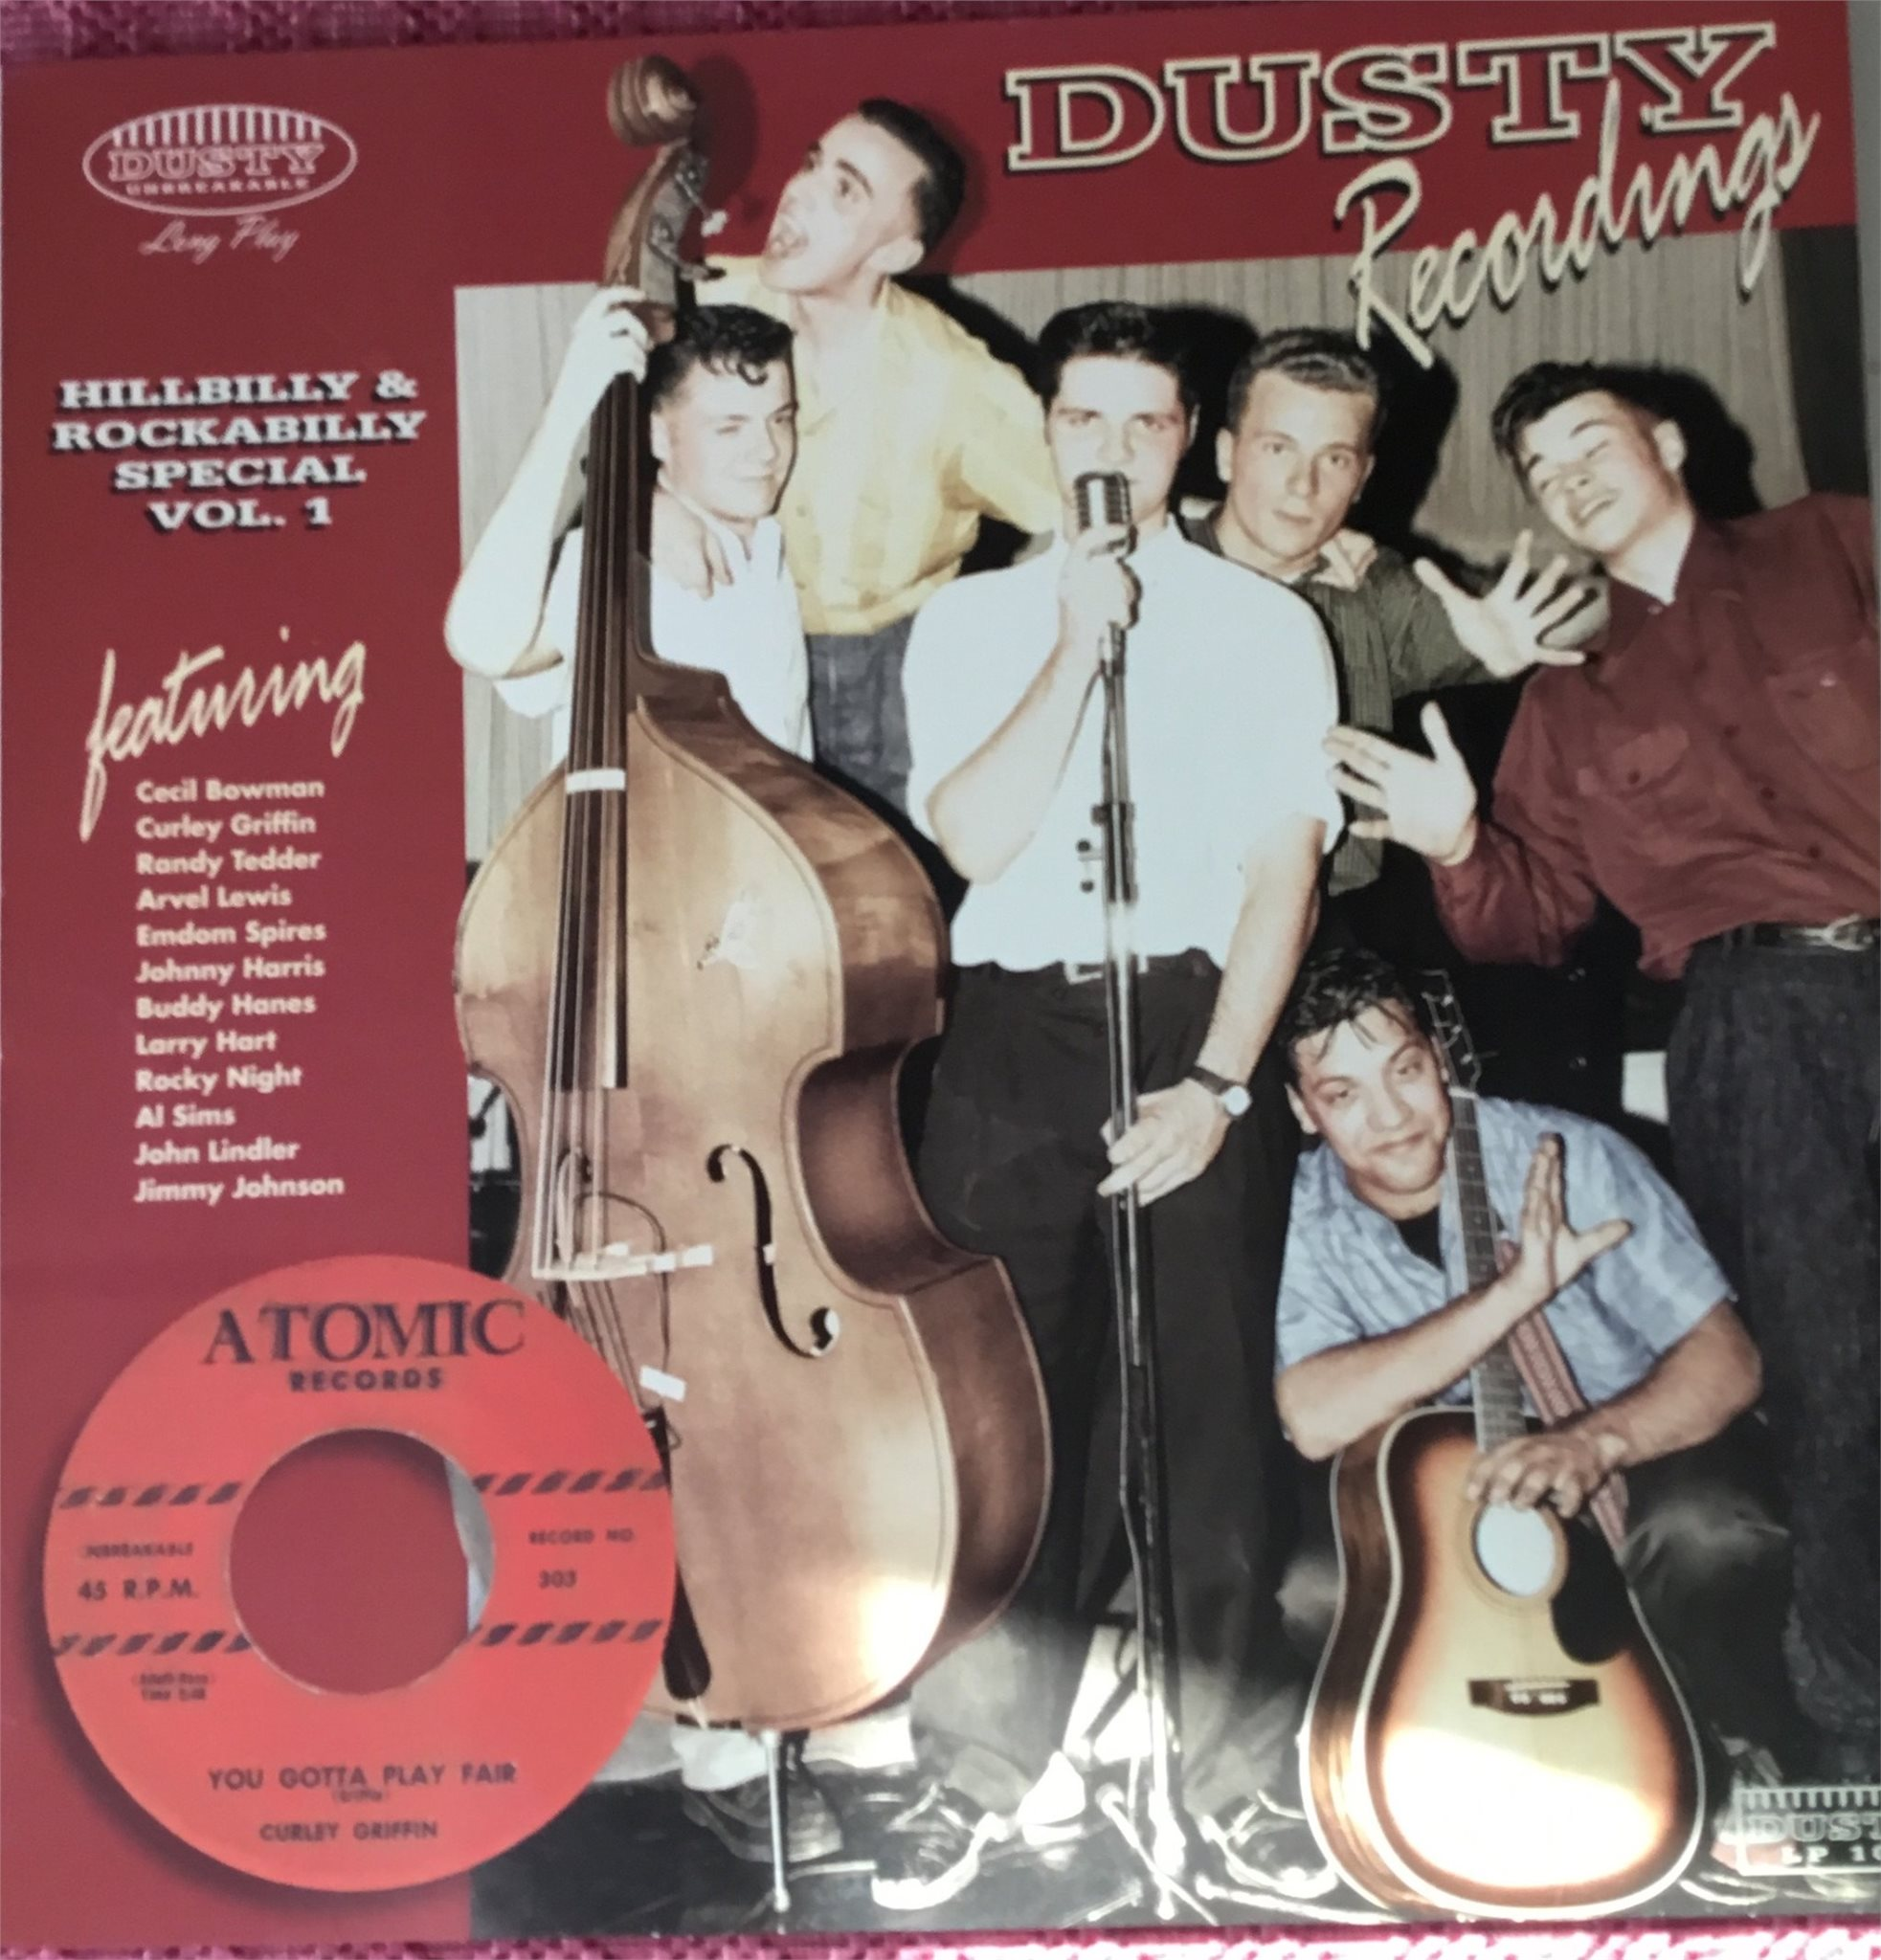 Hillbilly & Rockabilly Special Vol : 1. Dusty Recordings.